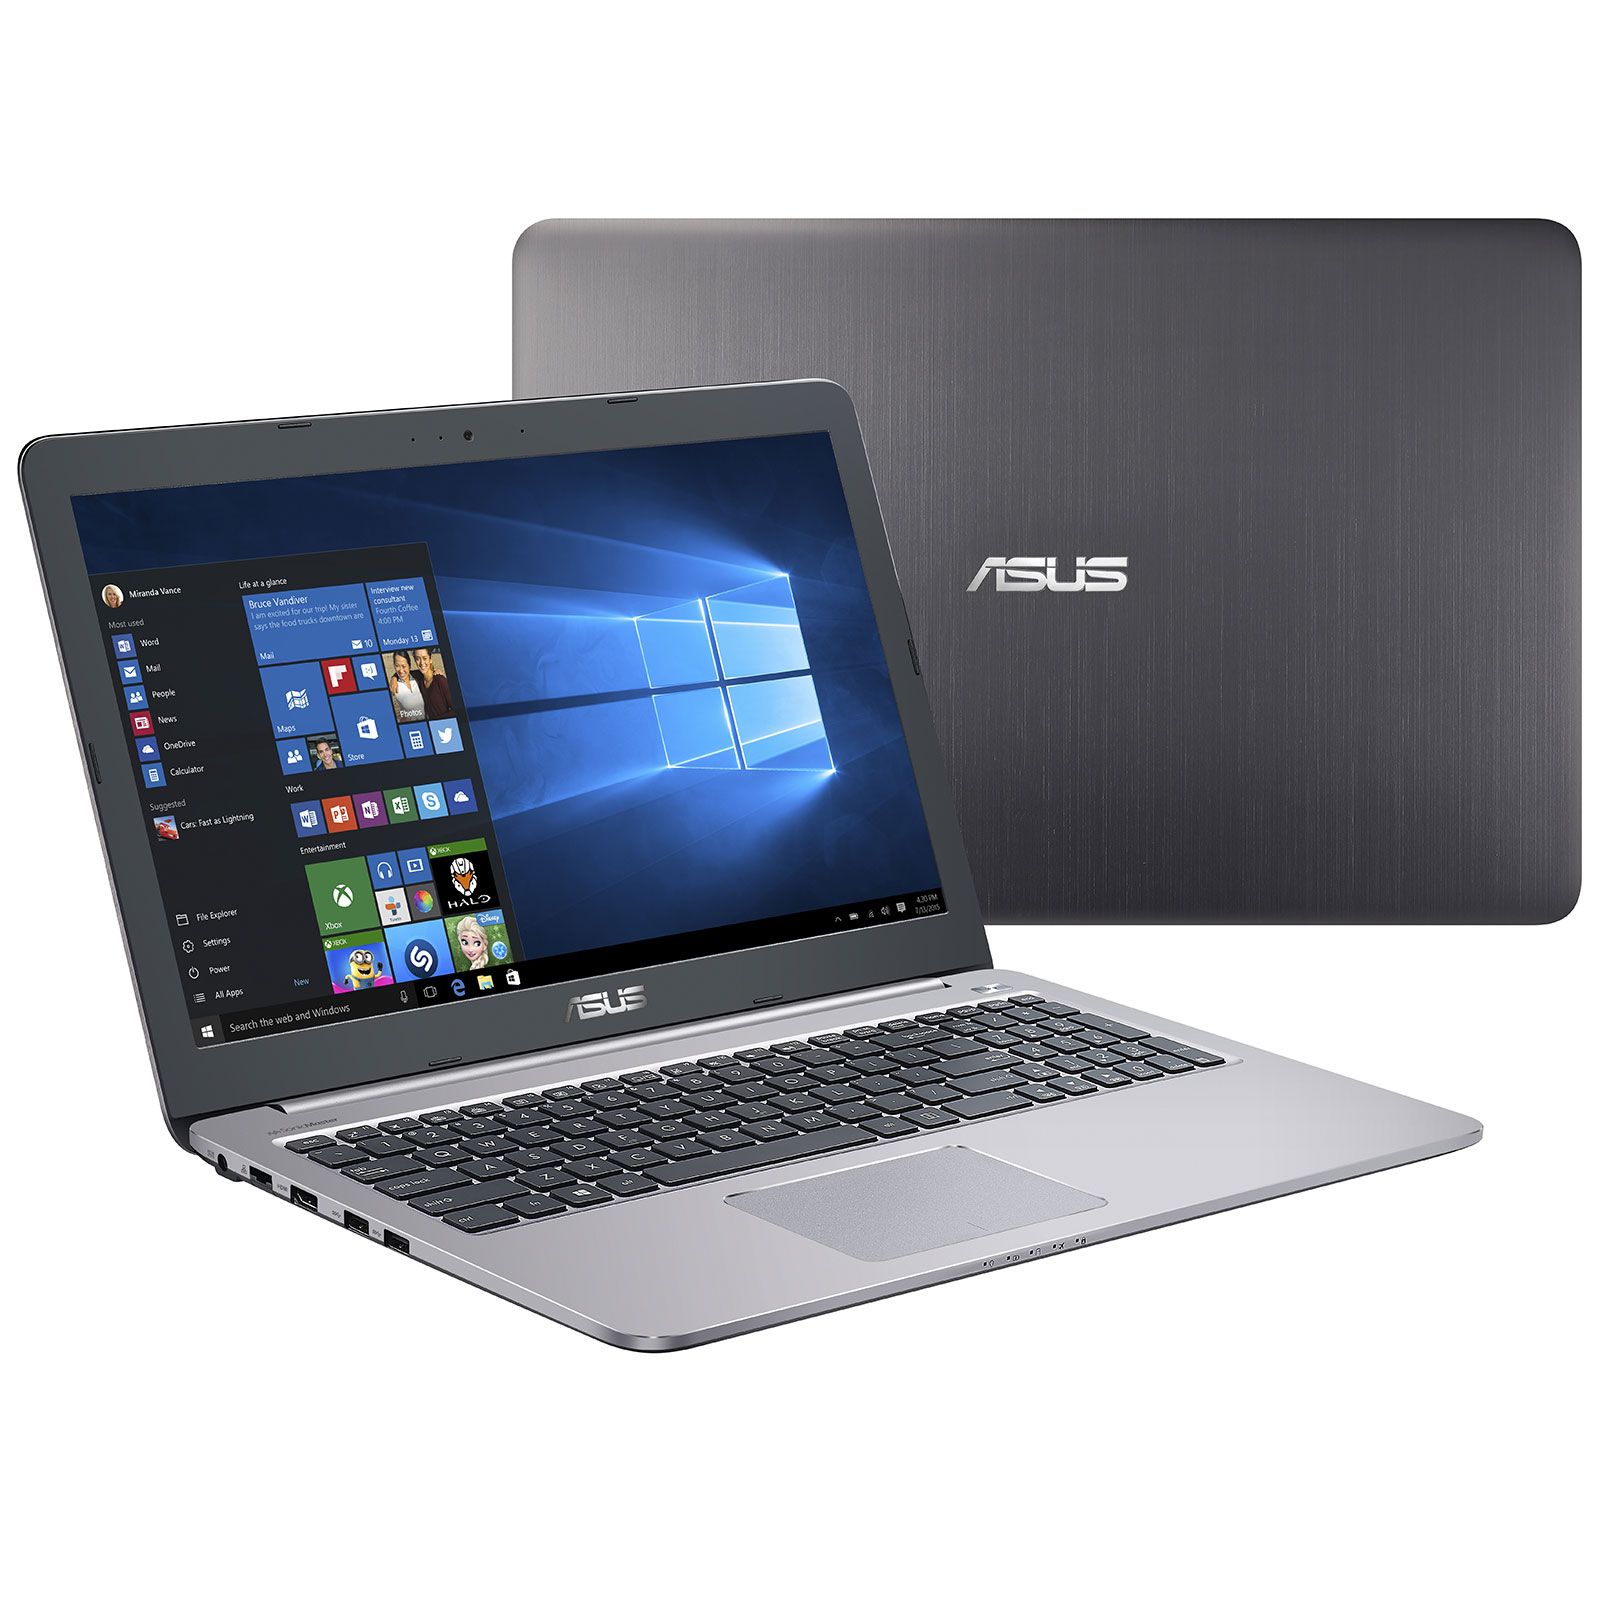 asus k501ux dm100t pc portable asus sur ldlc. Black Bedroom Furniture Sets. Home Design Ideas